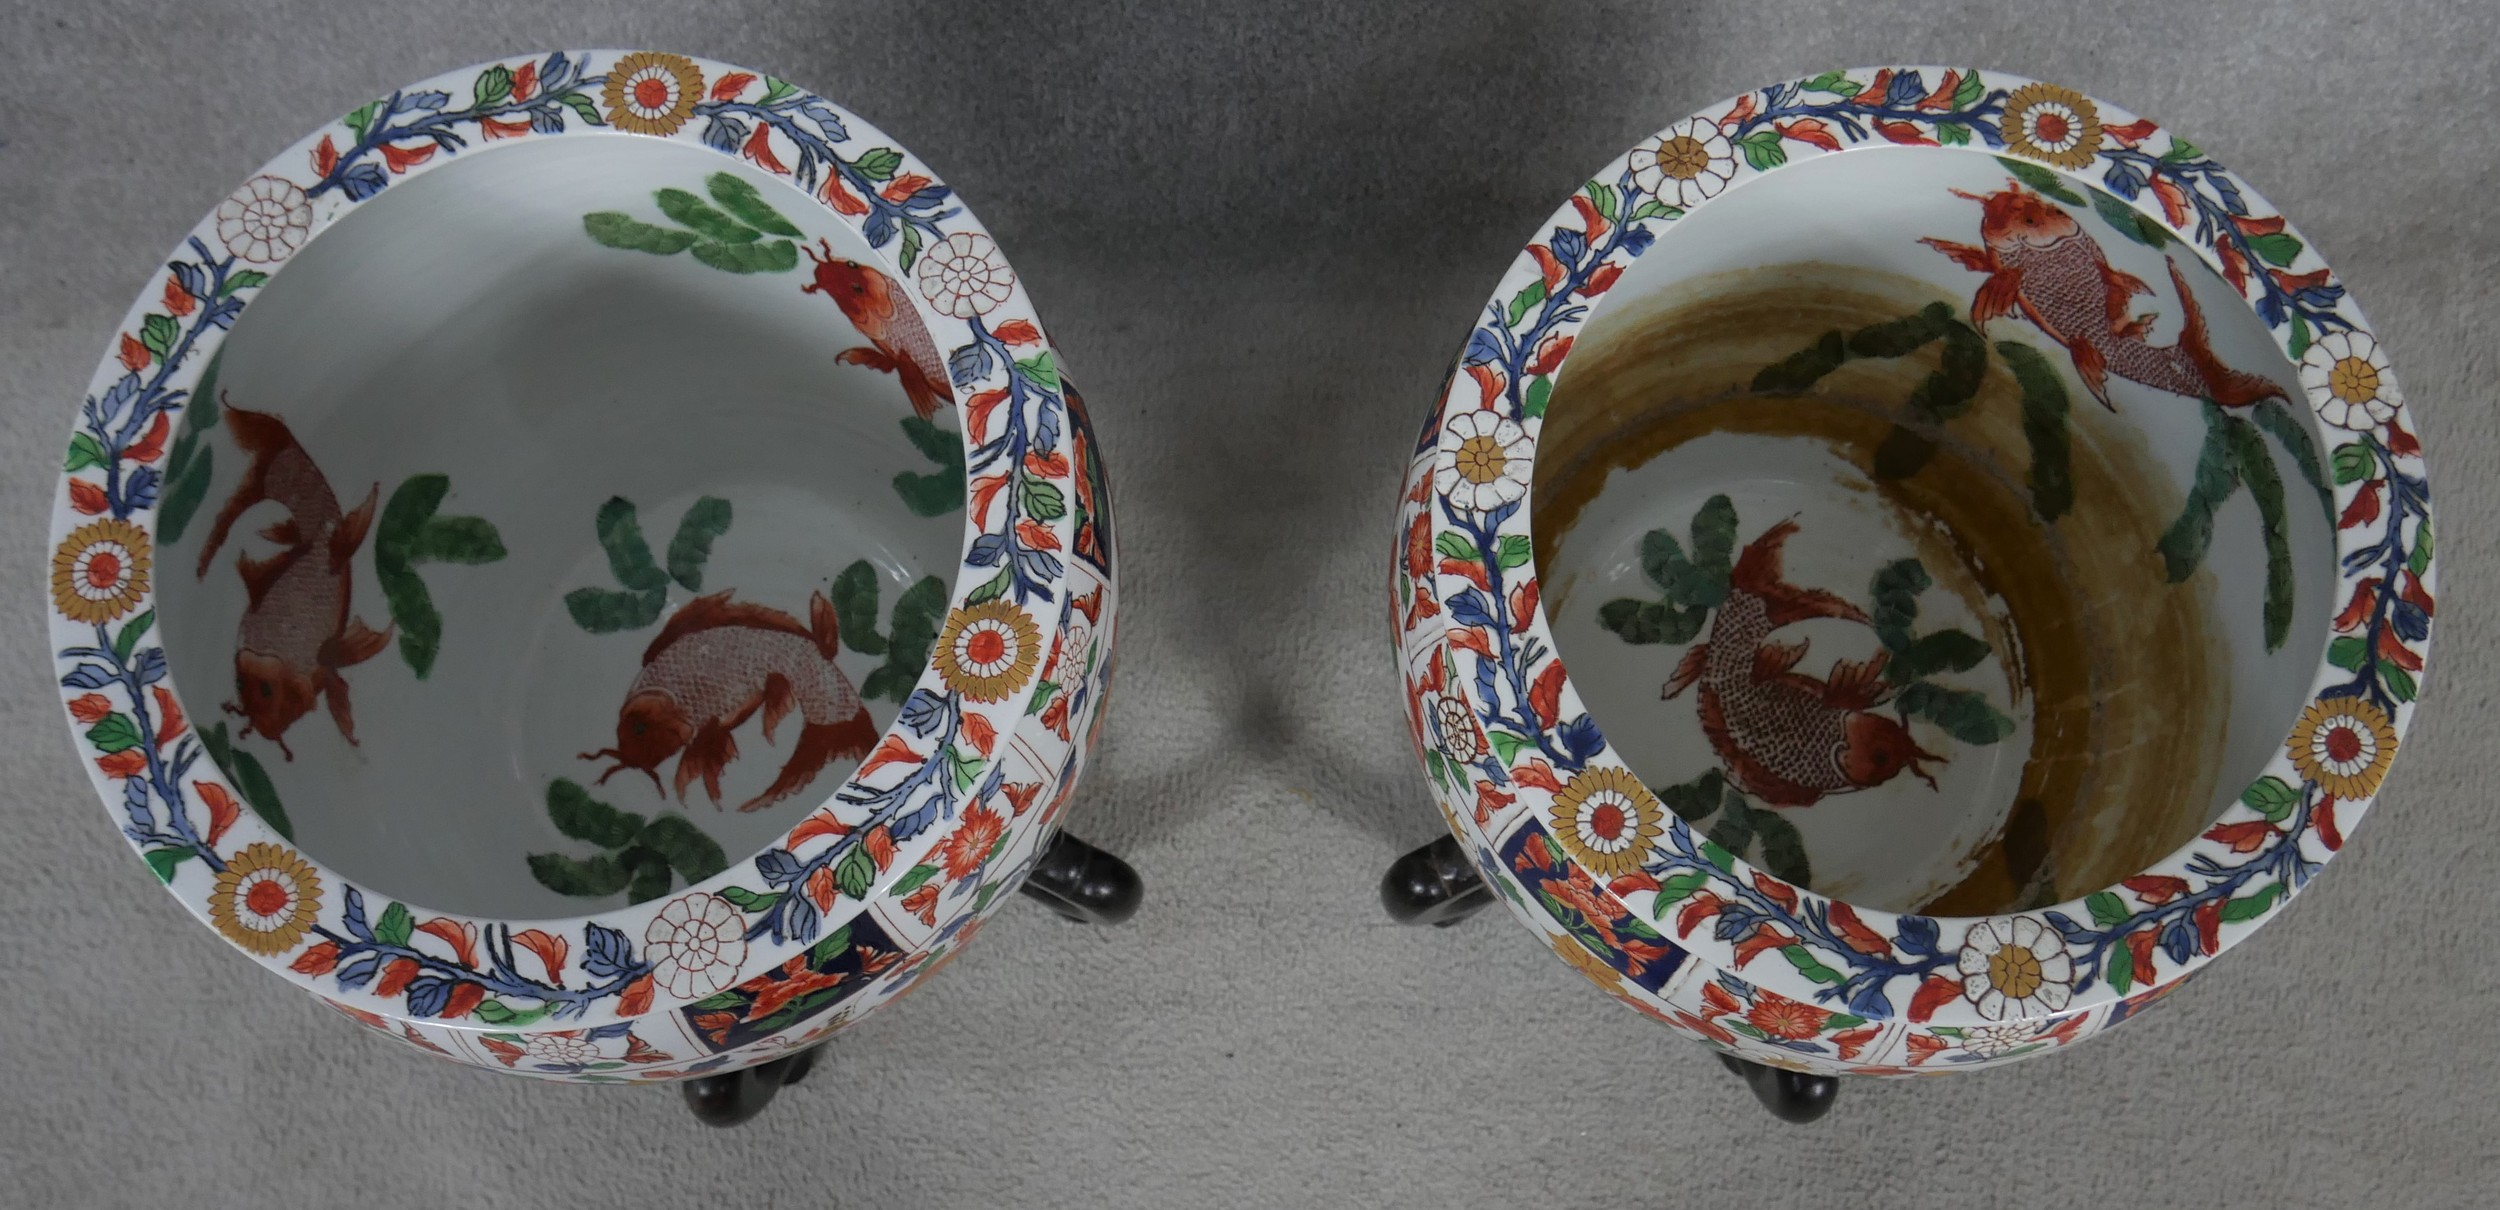 A pair of early 20th century glazed Chinese Imari ceramic planters/fish bowls on carved hardwood - Image 2 of 11